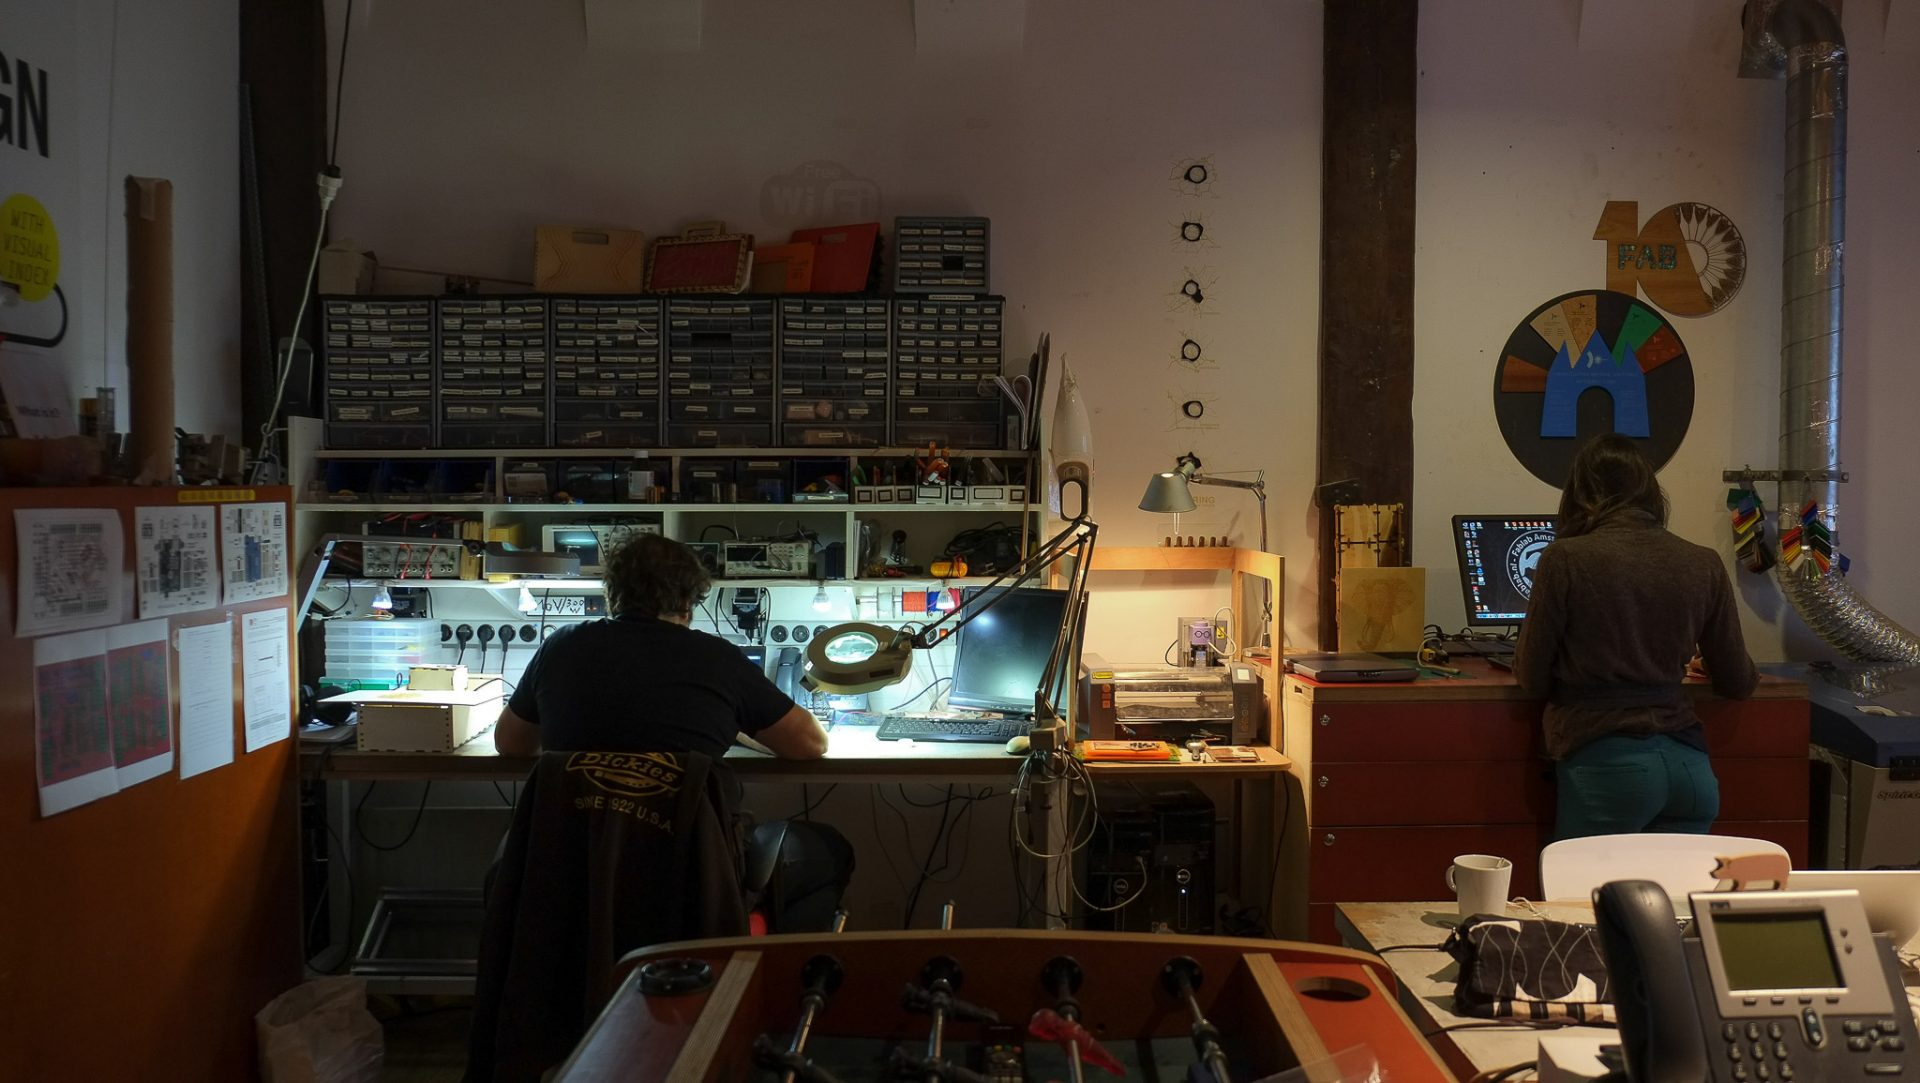 photograph of FabLab Amsterdam, interior. one person is seen from the back sitting at an electronics station lit by a magnifier desk lamp. there are racks of electronics components above the desk. on the right another person is standing working at a computer. everywhere there are various tools and fab lab miscellaneous objects.